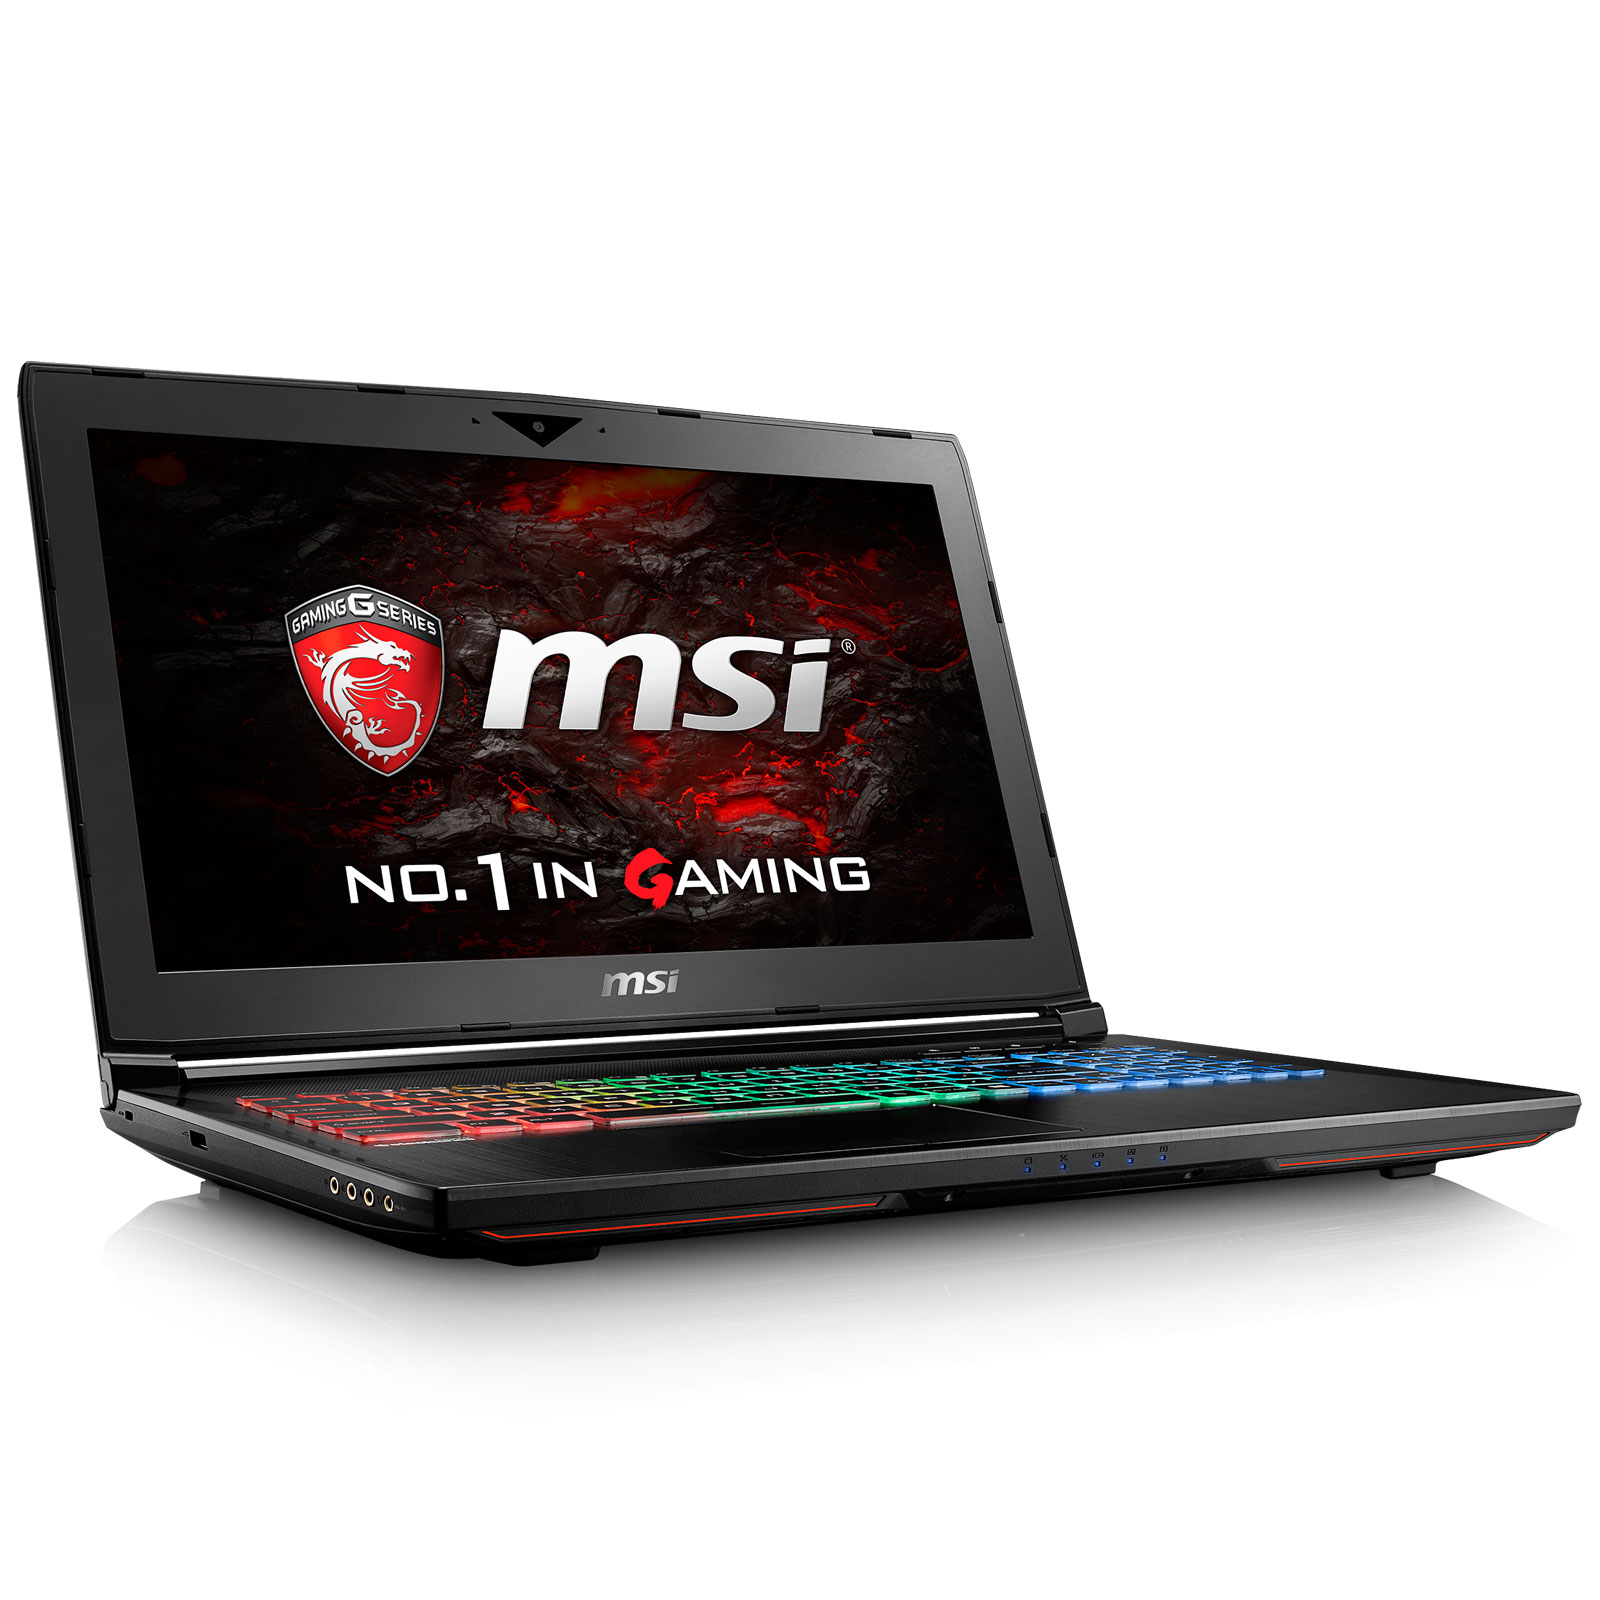 "PC portable MSI GT62VR 6RE-083FR Dominator Pro Intel Core i7-6700HQ 16 Go SSD 256 Go + HDD 1 To 15.6"" LED Full HD G-SYNC NVIDIA GeForce GTX 1070 Wi-Fi AC/Bluetooth Webcam Windows 10 Famille 64 bits (garantie constructeur 2 ans)"